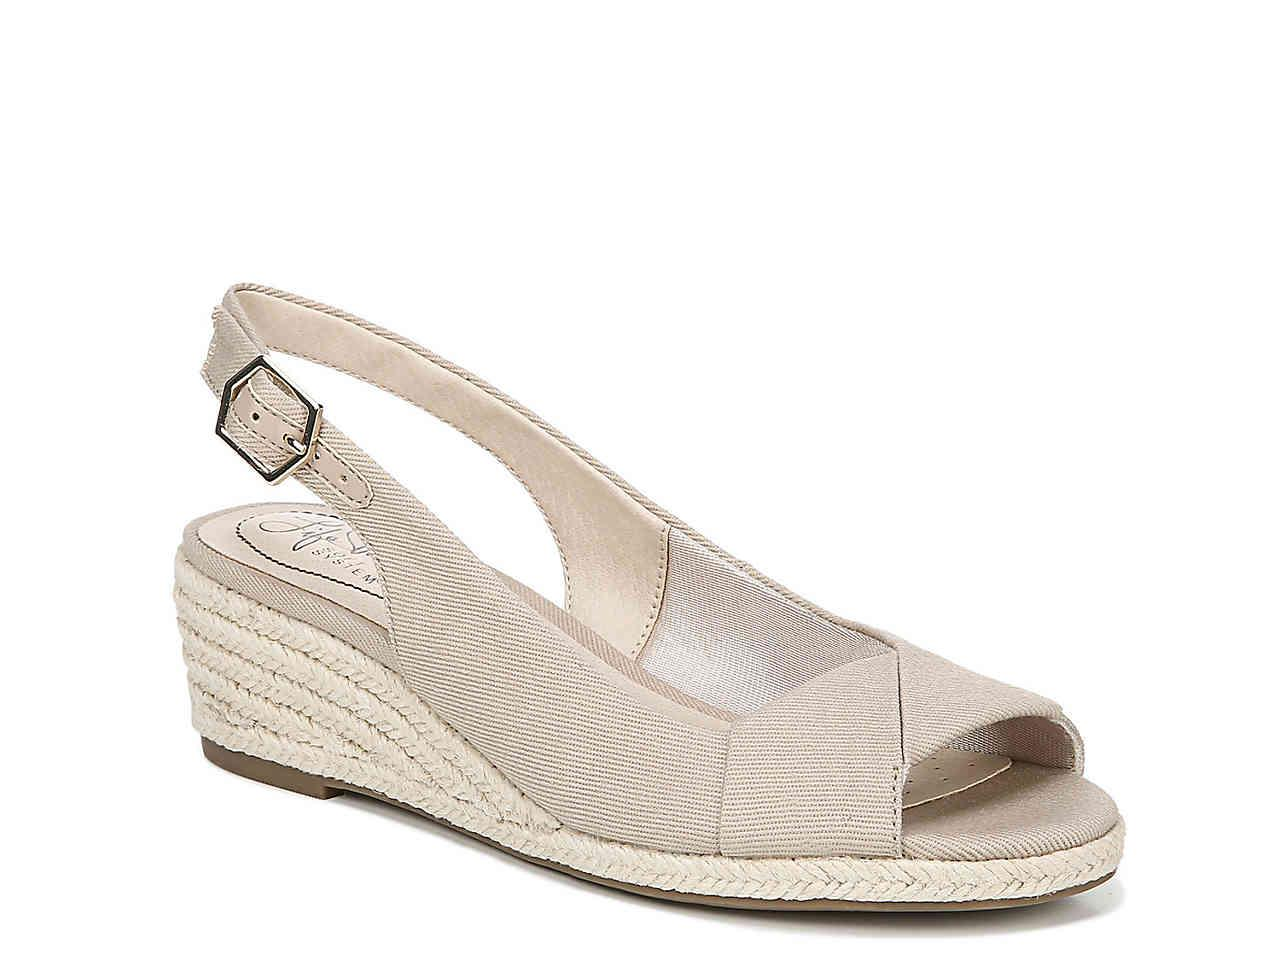 67c776f8b6cb Lyst - LifeStride Socialite Espadrille Wedge Sandal in Natural